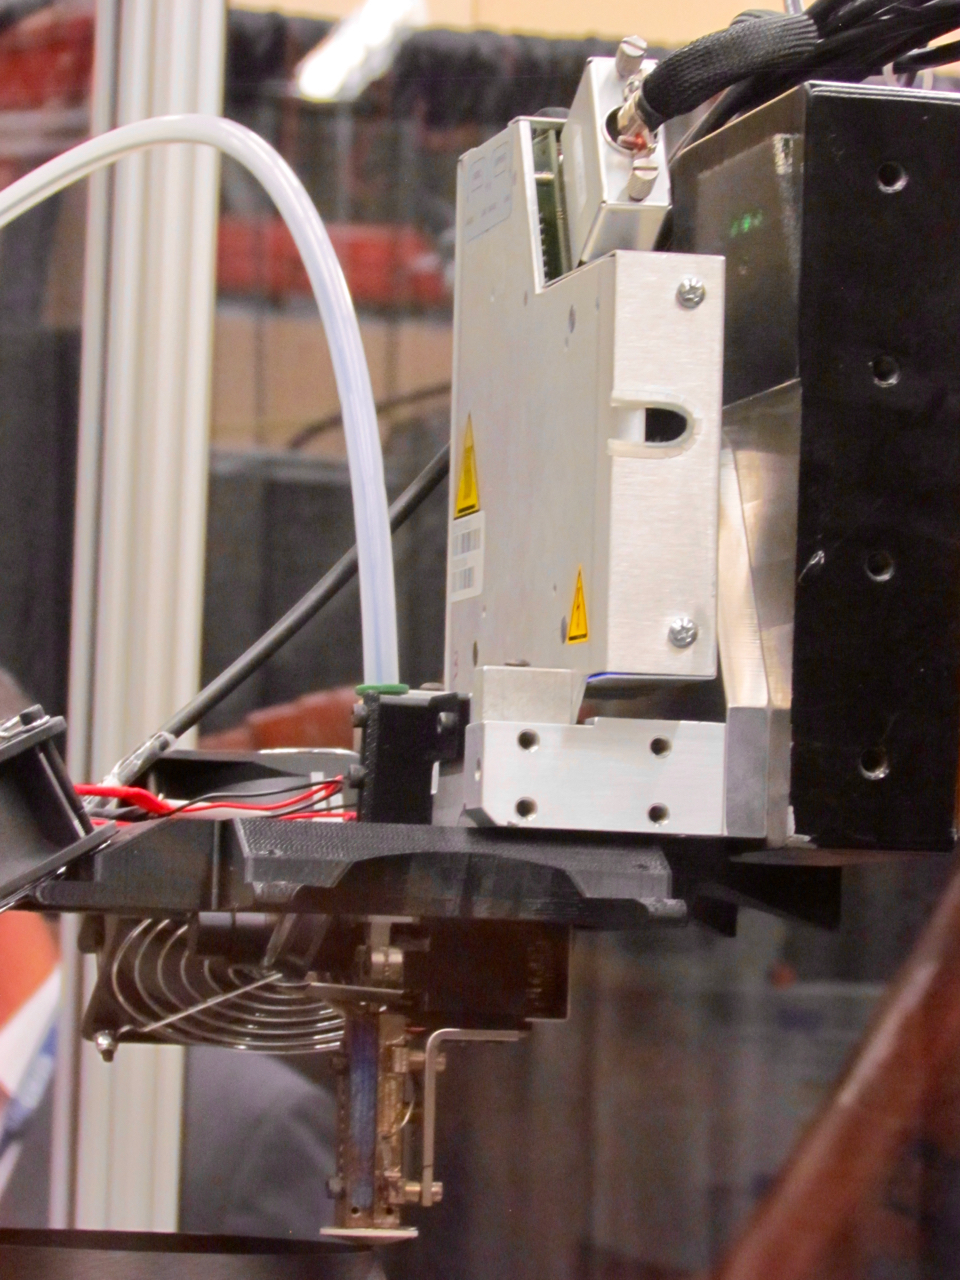 The extruder on the Stratasys Robotic Composite 3D Demonstrator